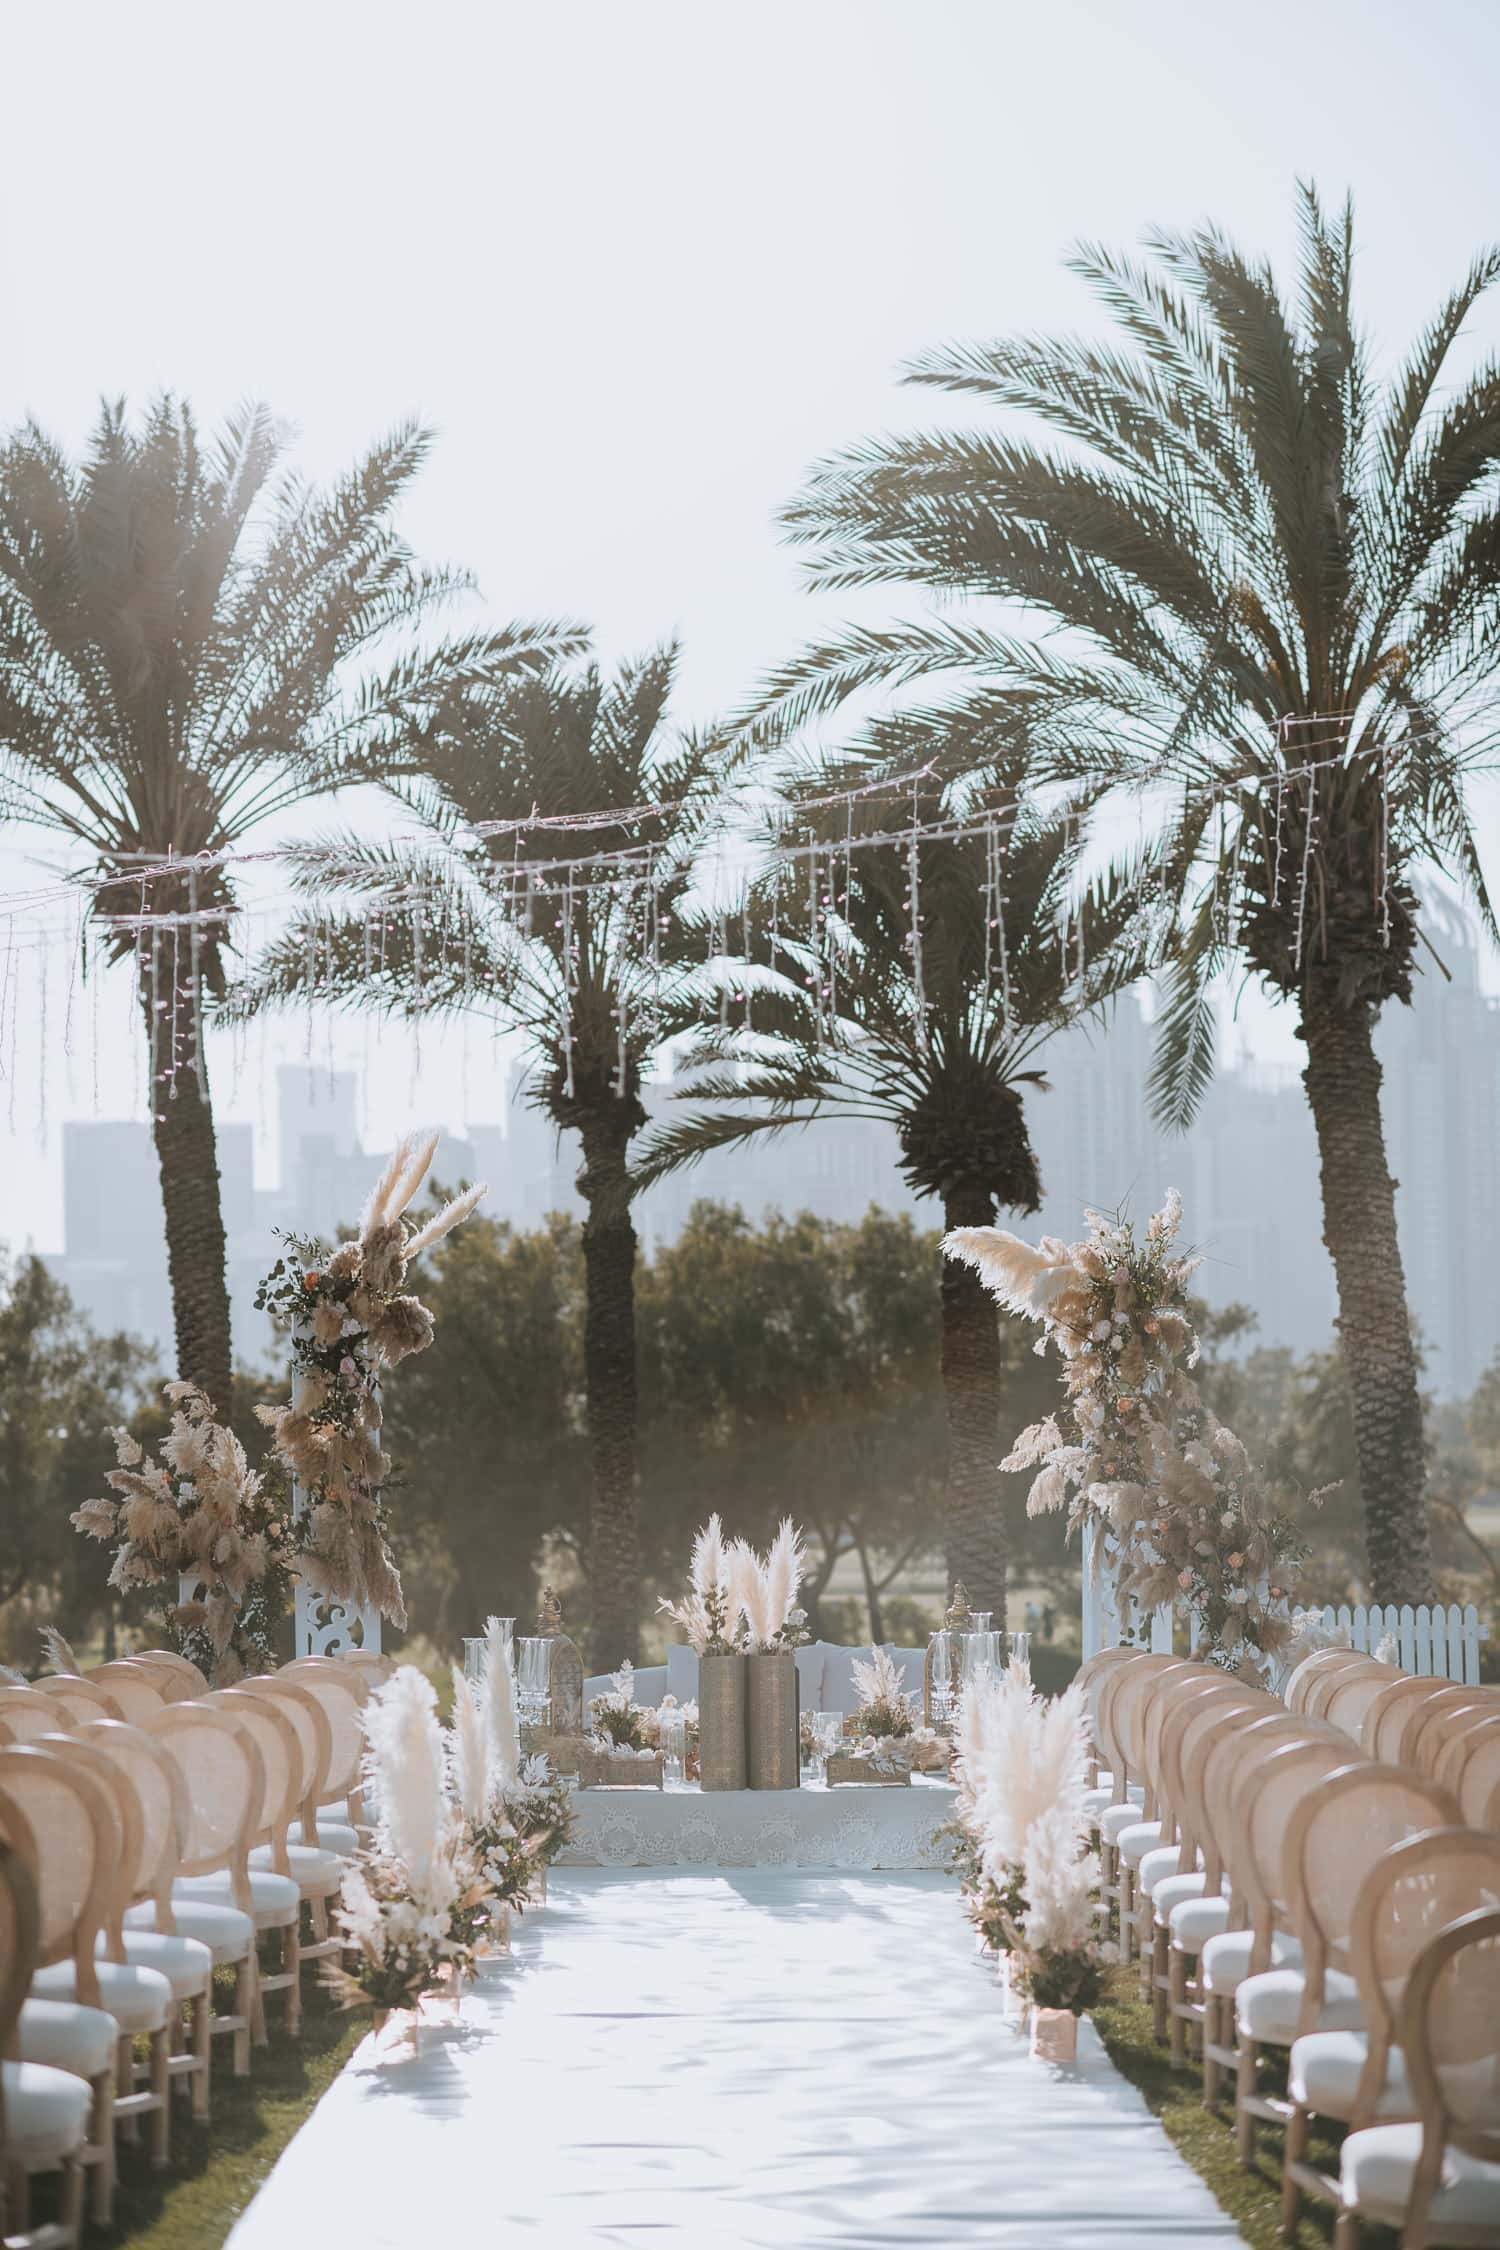 Emirates Golf Club Outdoor Wedding Ceremony Decor